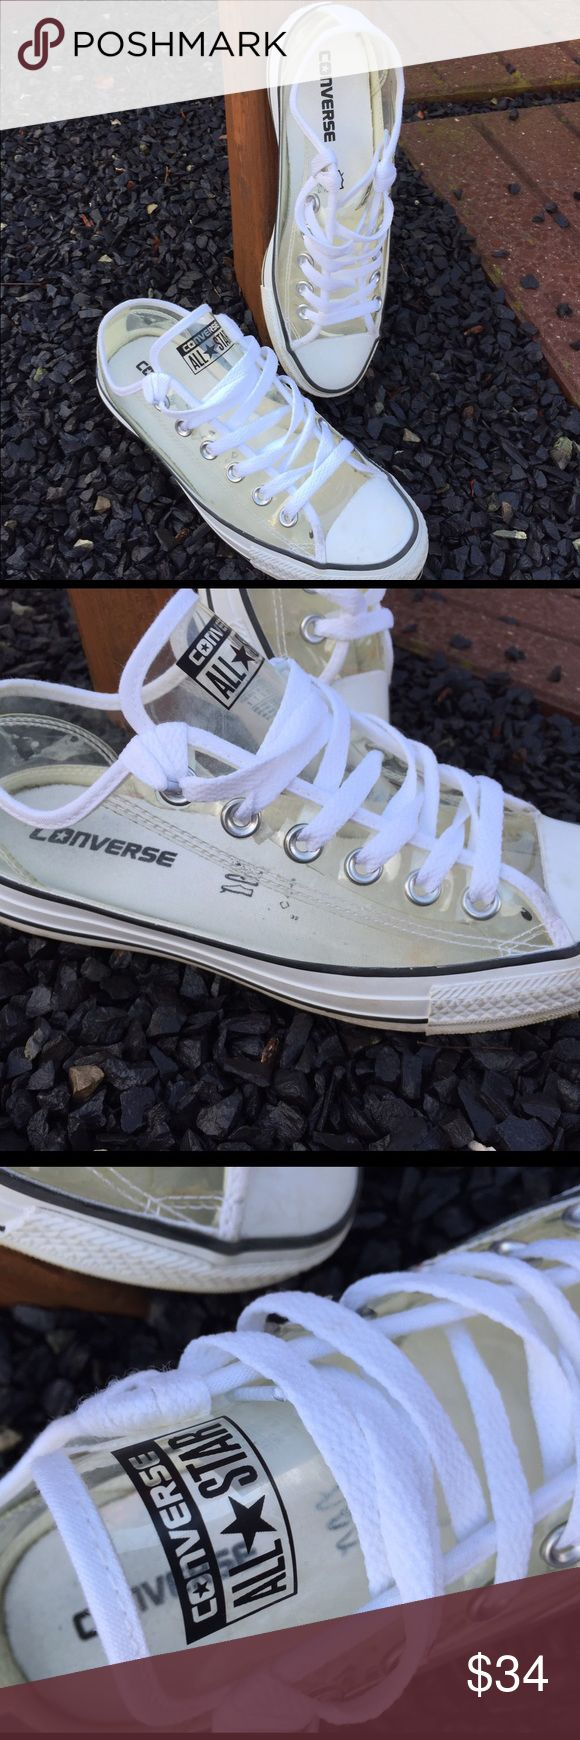 Converse All Star Clear Transparent Sneakers Size 7. Gently preowned. Be sure to view the other items in our closet. We offer both women's and Mens items in a variety of sizes. Bundle and save!! Thank you for viewing our item!! Converse Shoes Sneakers